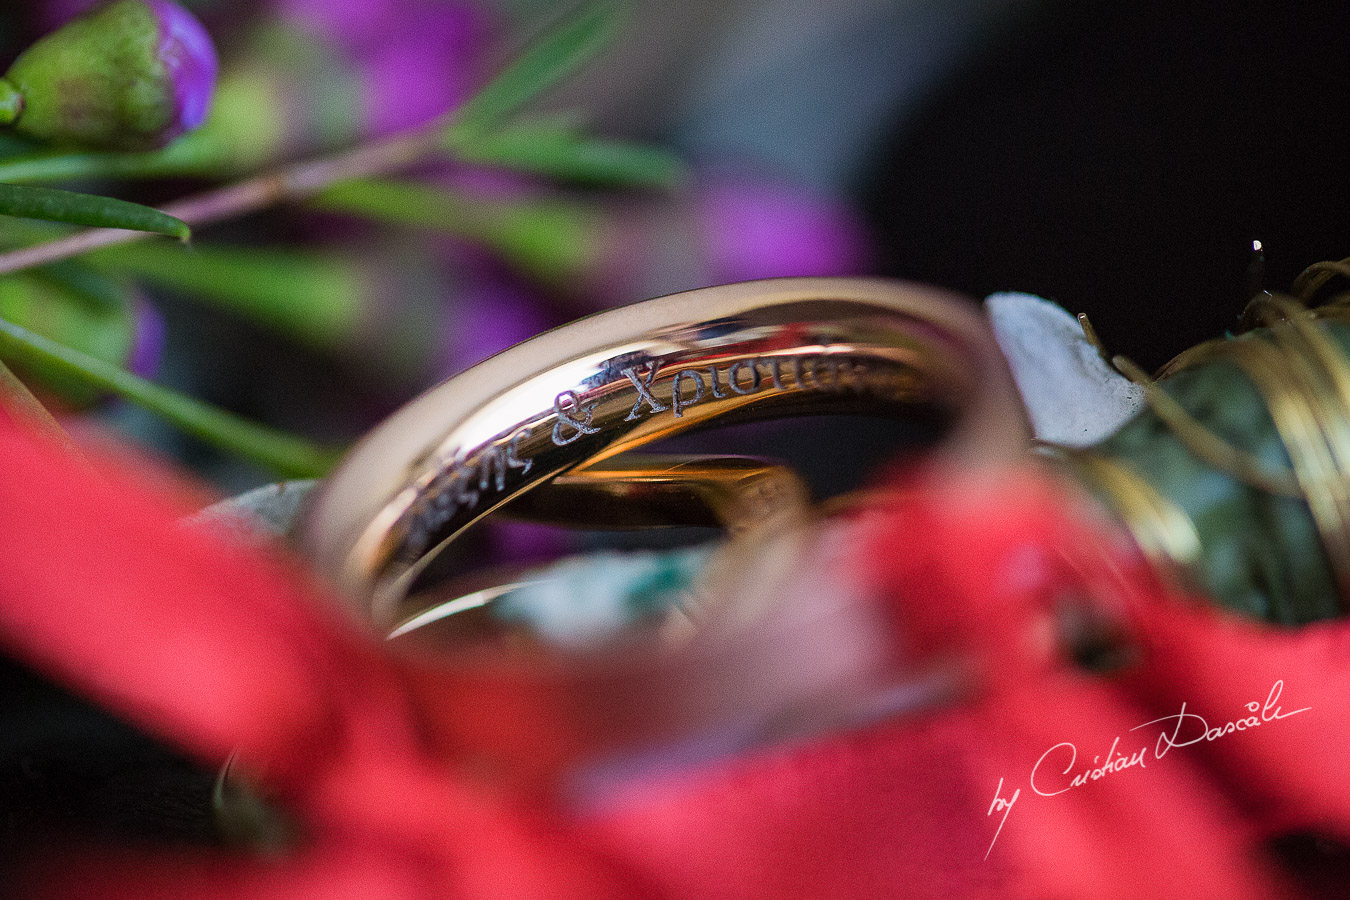 Wedding rings details, captured at a wedding in Cyprus by Photographer Cristian Dascalu.